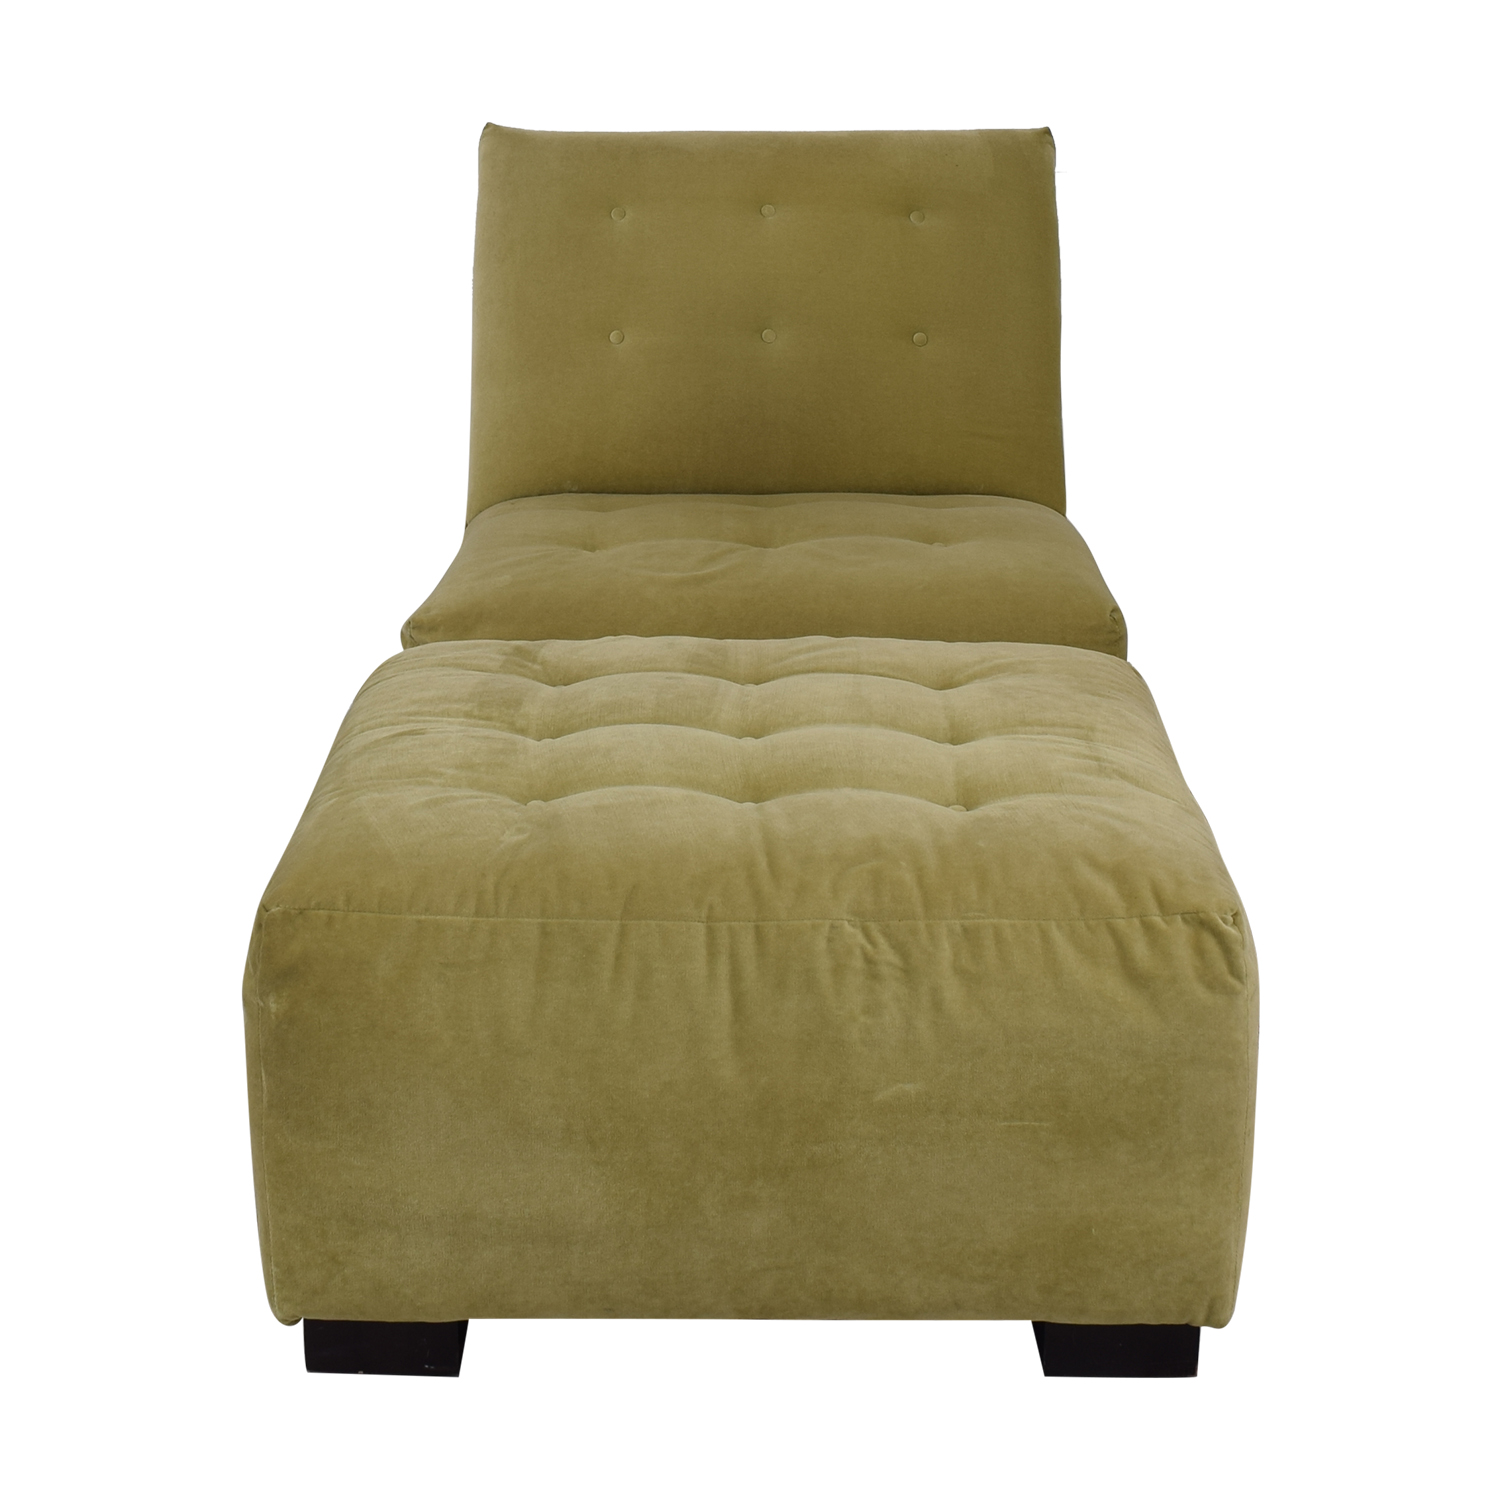 Prime 70 Off Crate Barrel Crate Barrel Sage Green Tufted Lounge Chair Ottoman Chairs Theyellowbook Wood Chair Design Ideas Theyellowbookinfo